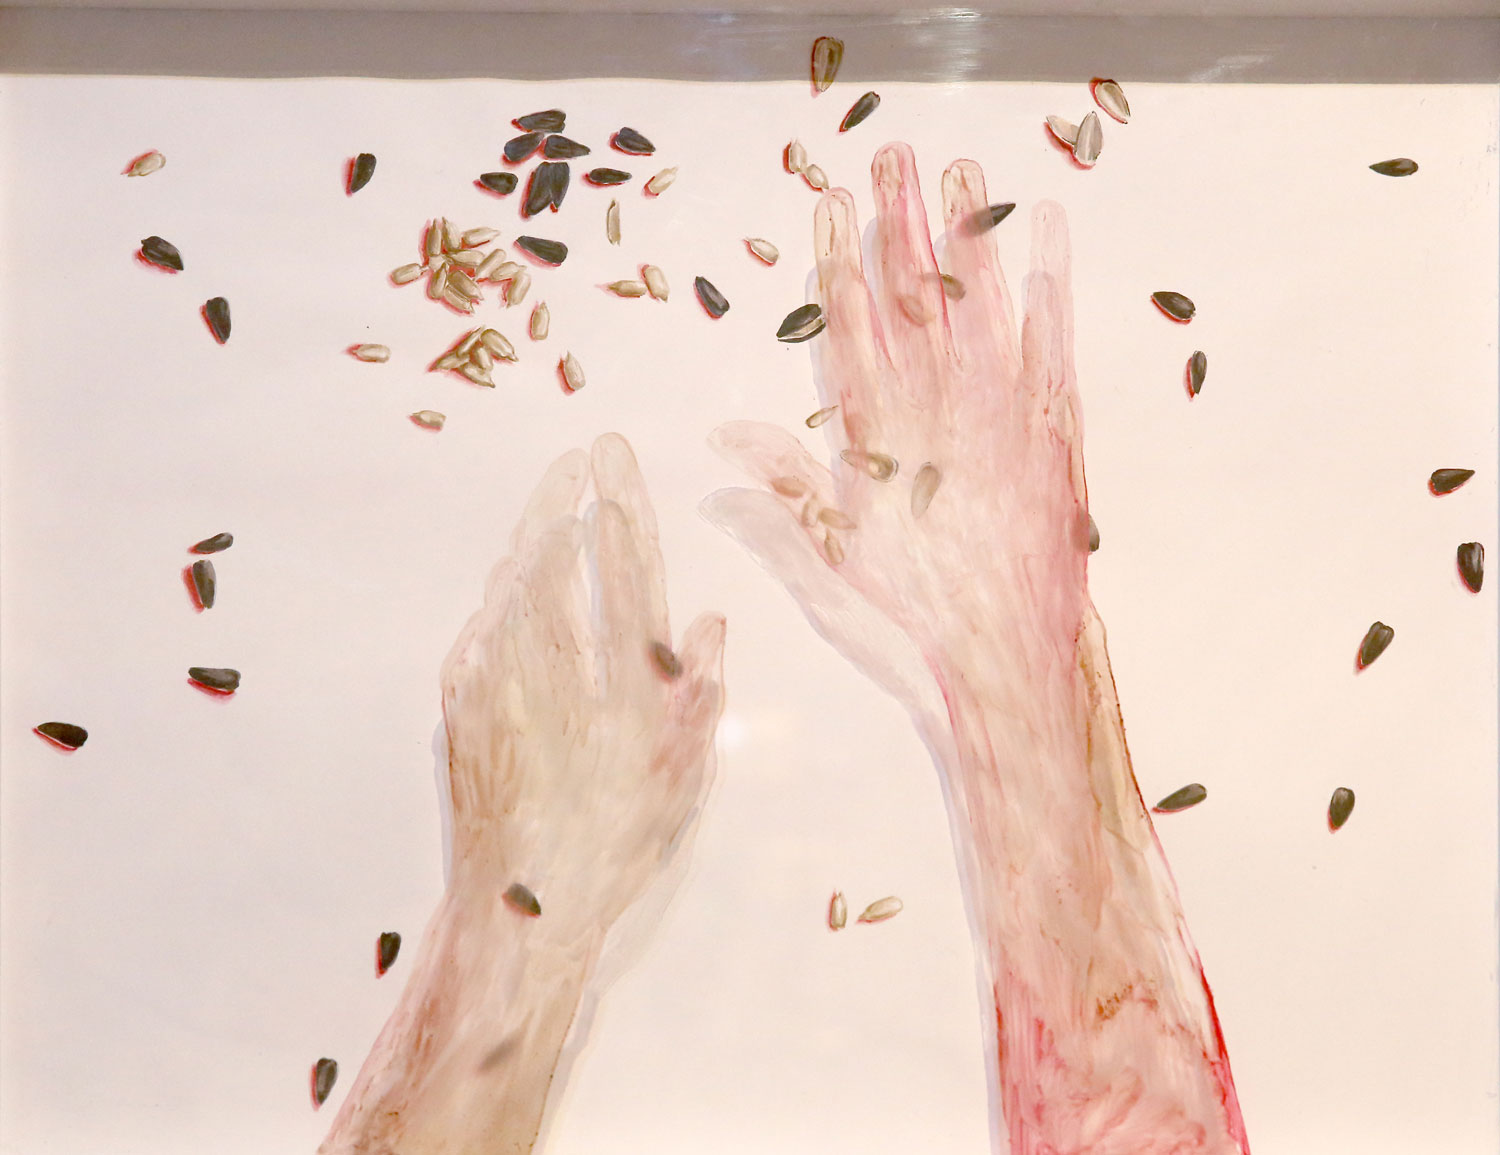 Diana Serghiuta, Seeds oil on glass watercolor on paper, 40 x 50 cm